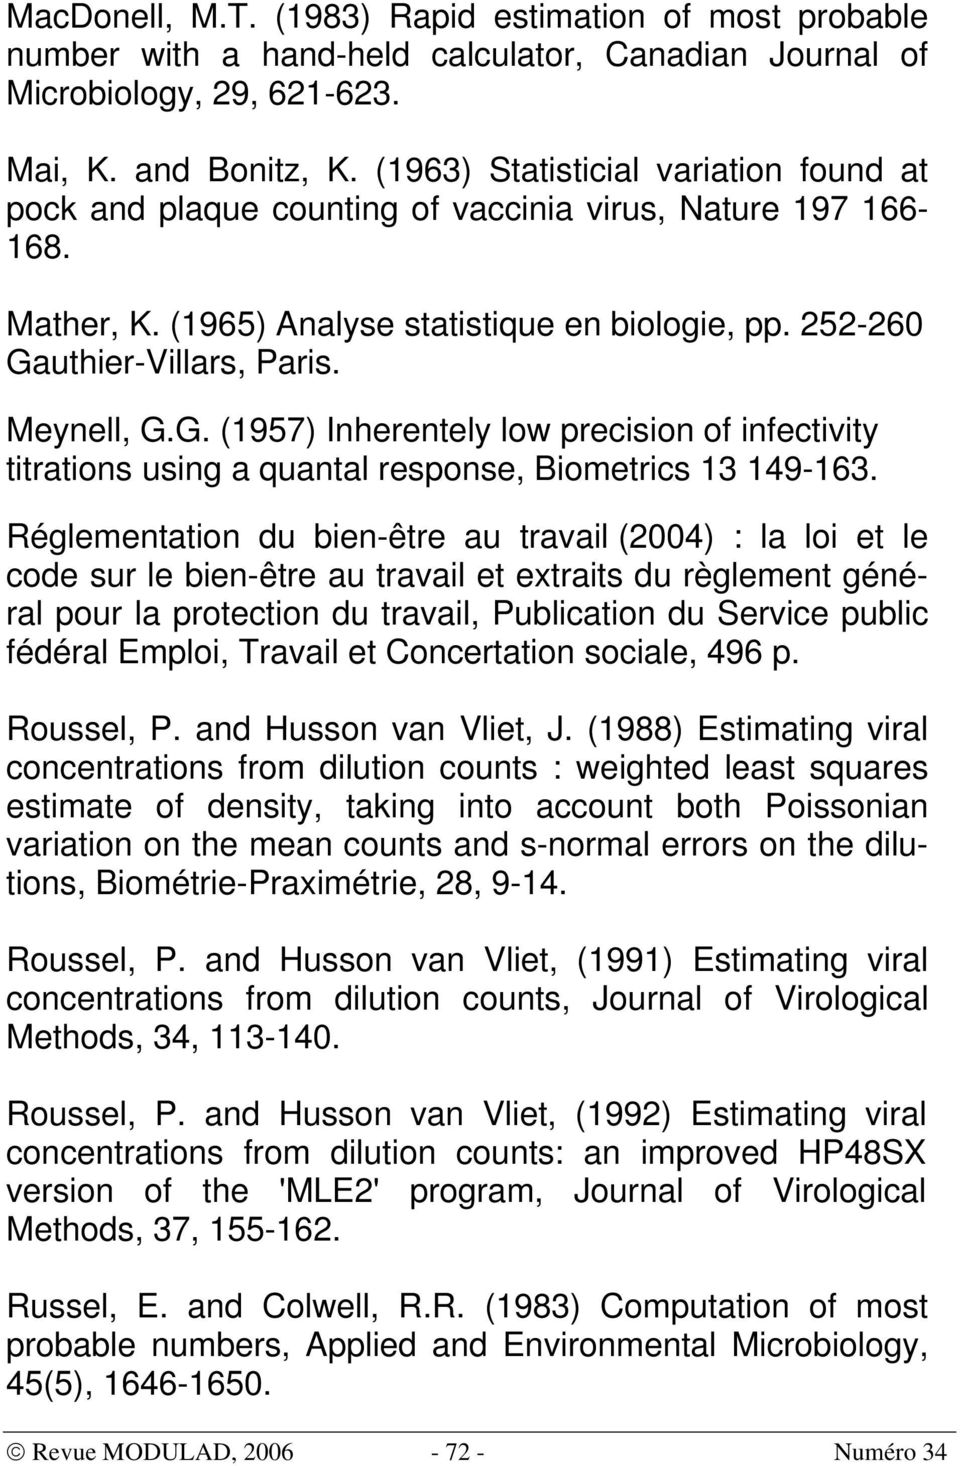 uther-Vllars, Pars. Meynell, G.G. (957) Inherentely low precson o nectvty ttratons usng a quantal response, Bometrcs 3 49-63.